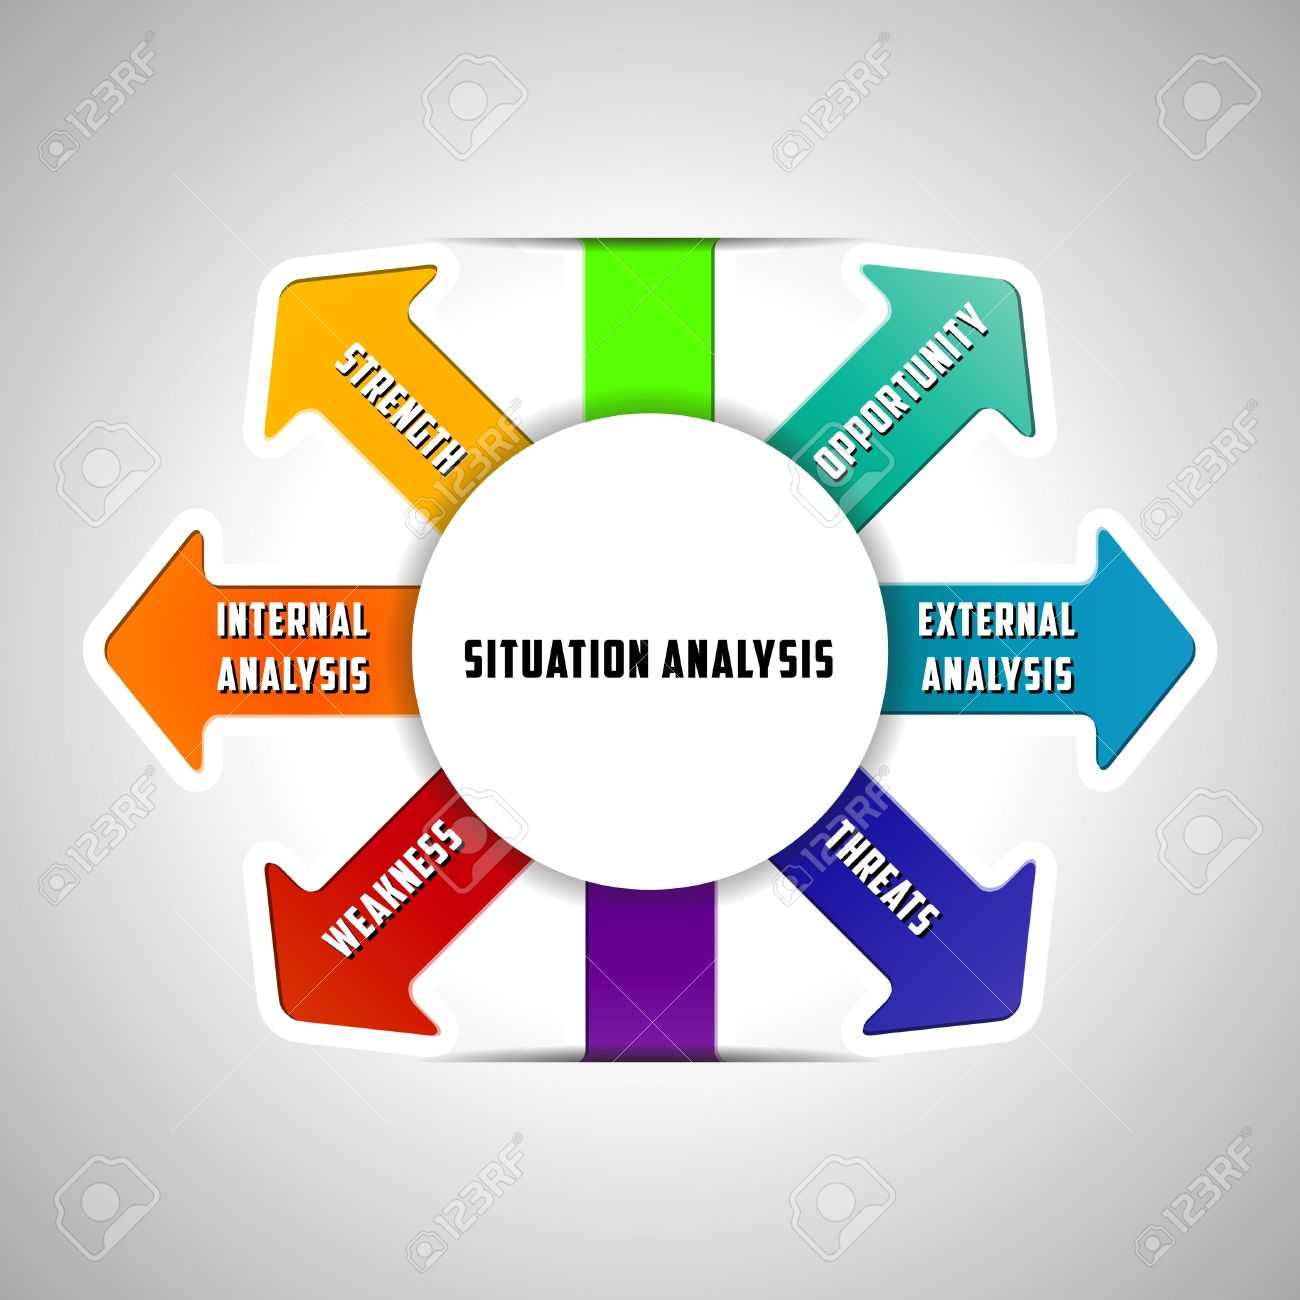 png royalty free Hypothesis clipart situational analysis. Collection of free conducted